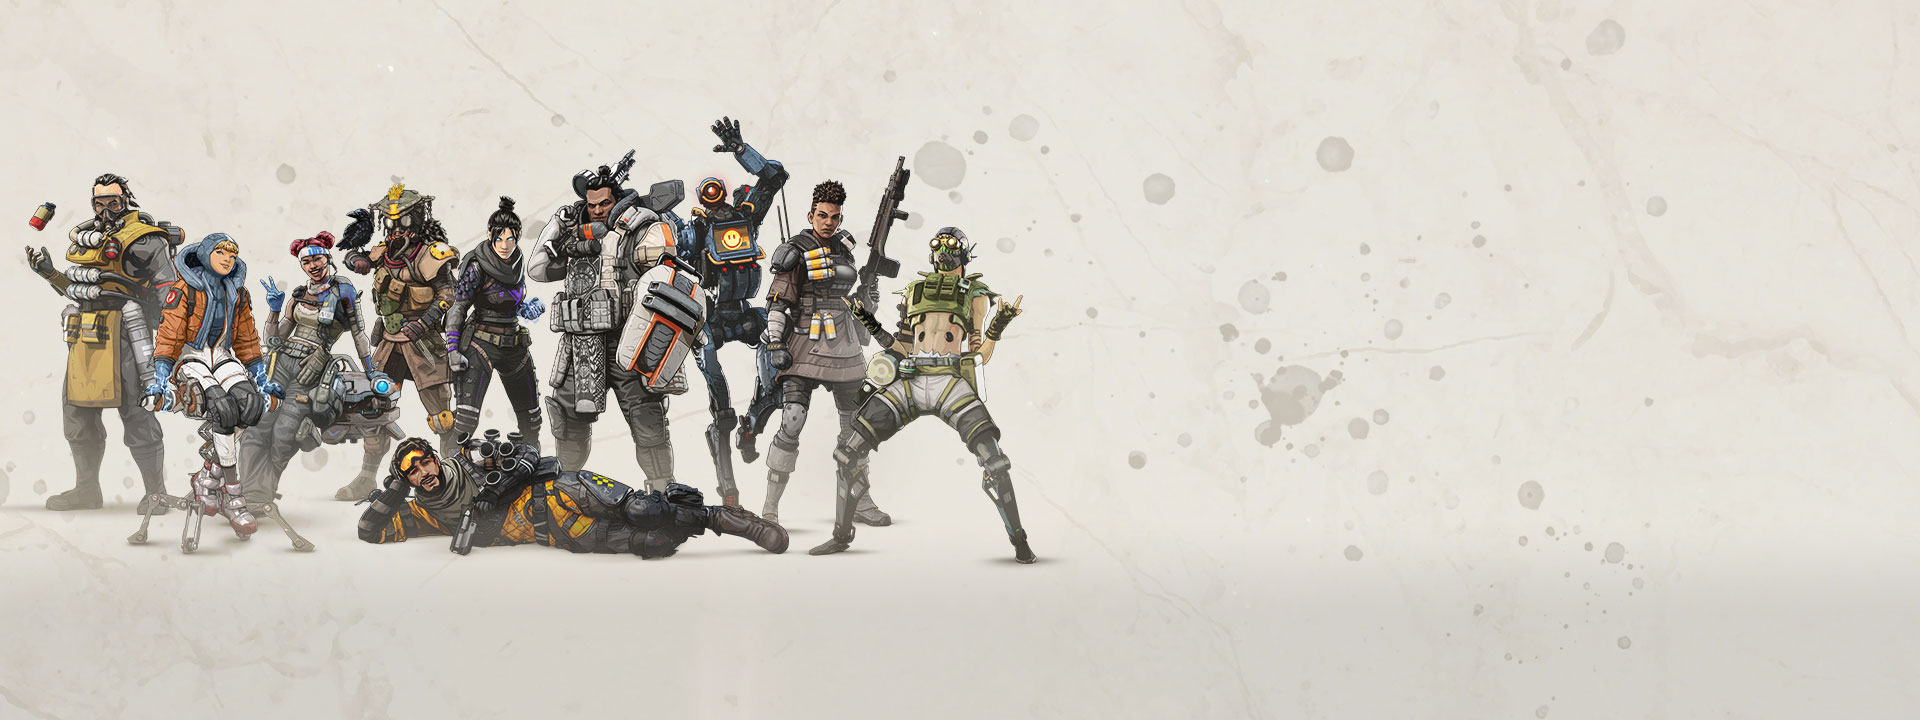 Verschillende Apex Legends personages staan en poseren